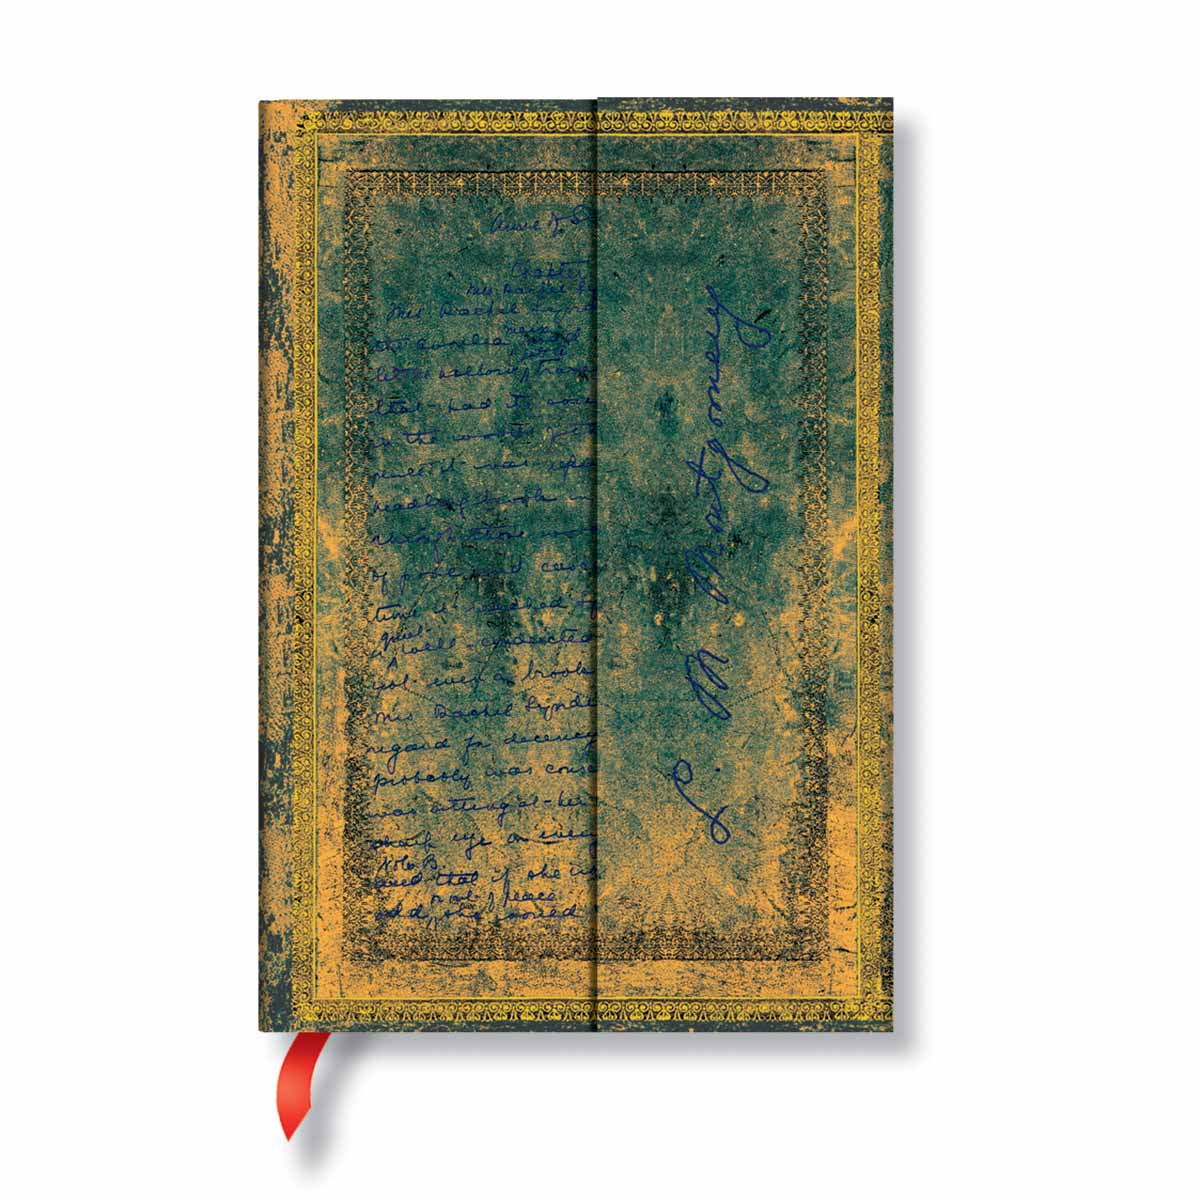 Paperblanks L.M. Montgomery, Anne of Green Gables Mini Journal